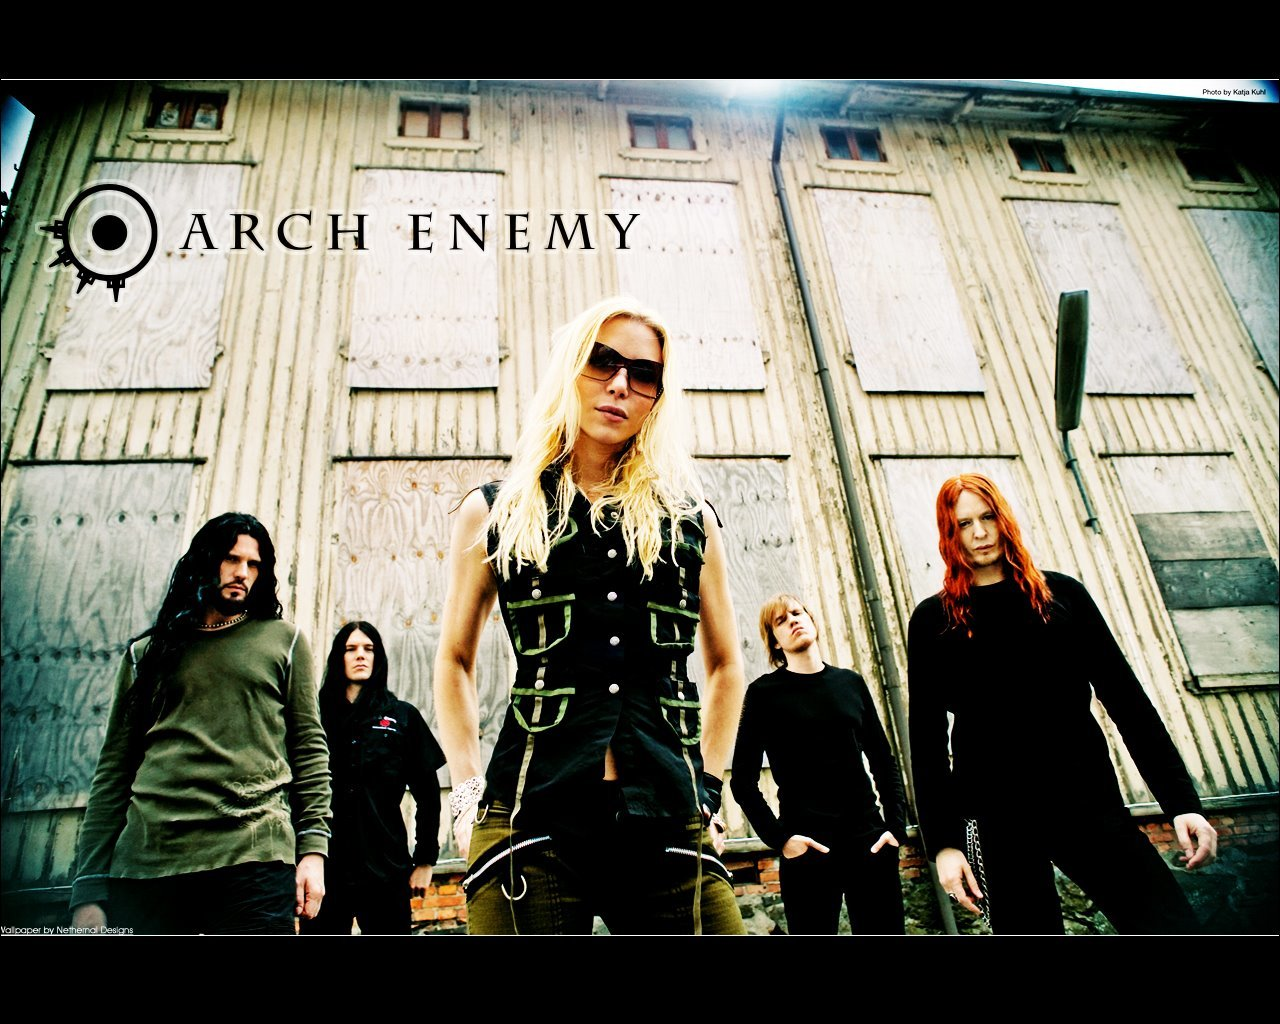 Music arch enemy low-angle HD Wallpaper